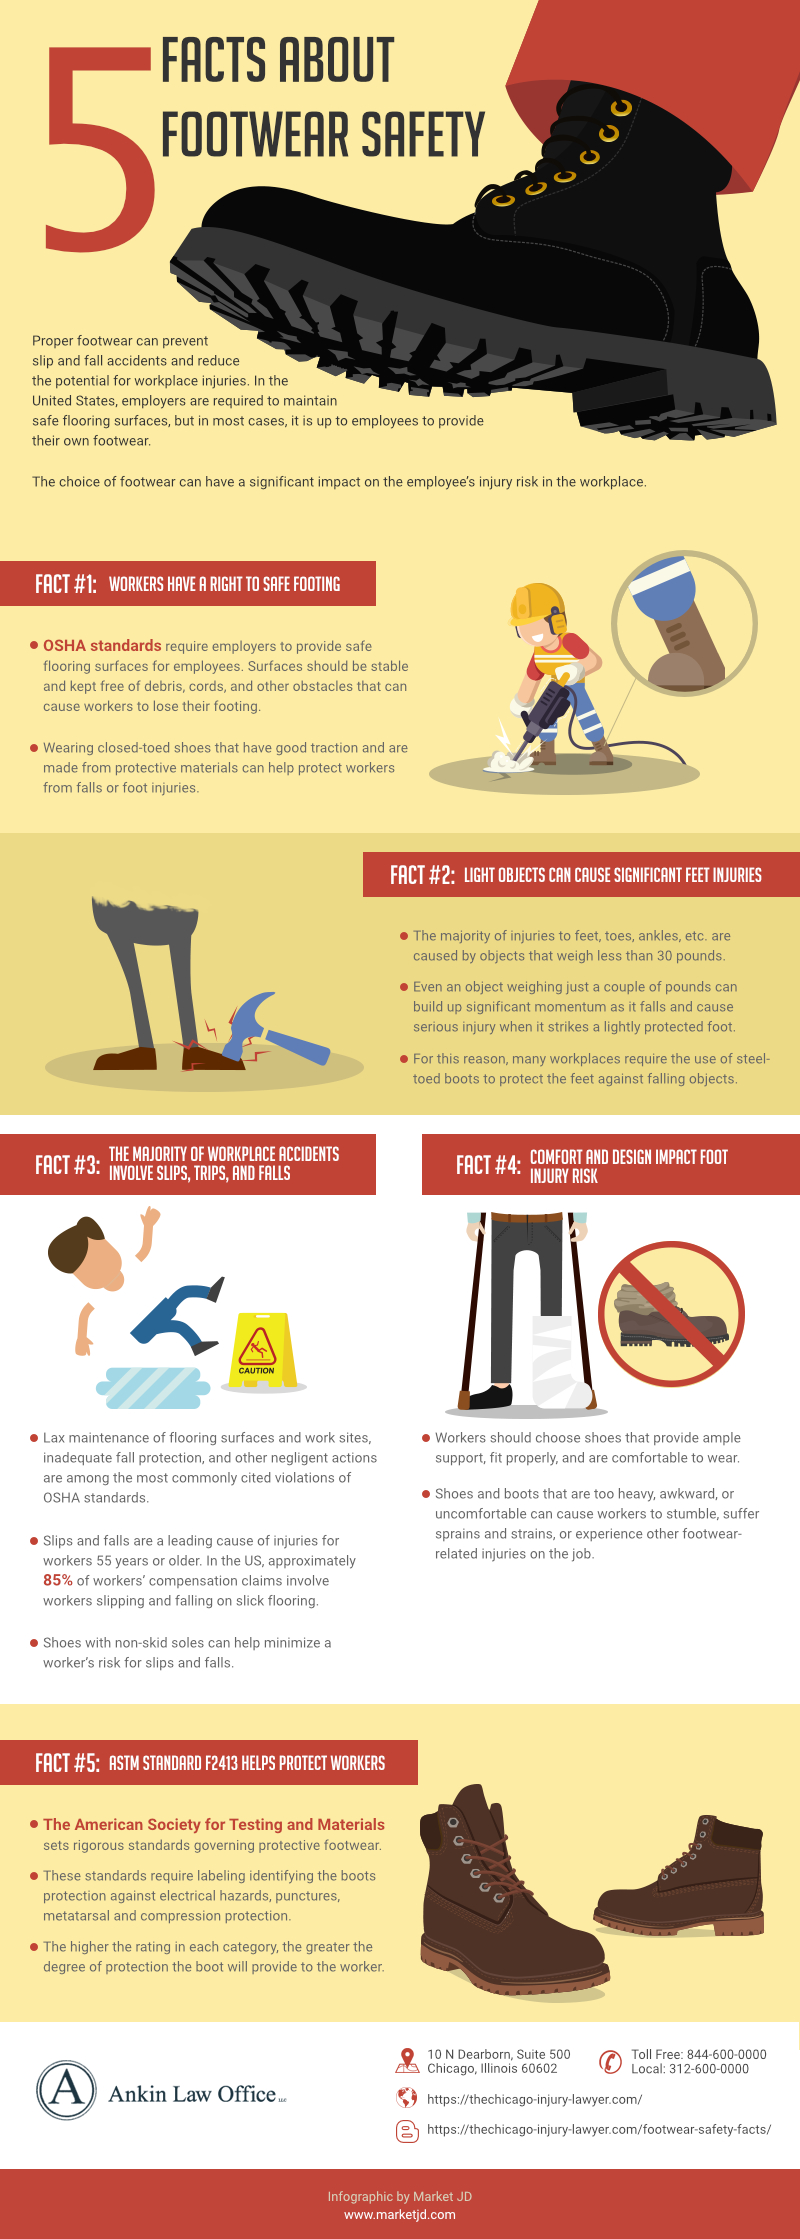 5 Facts About Footwear Safety